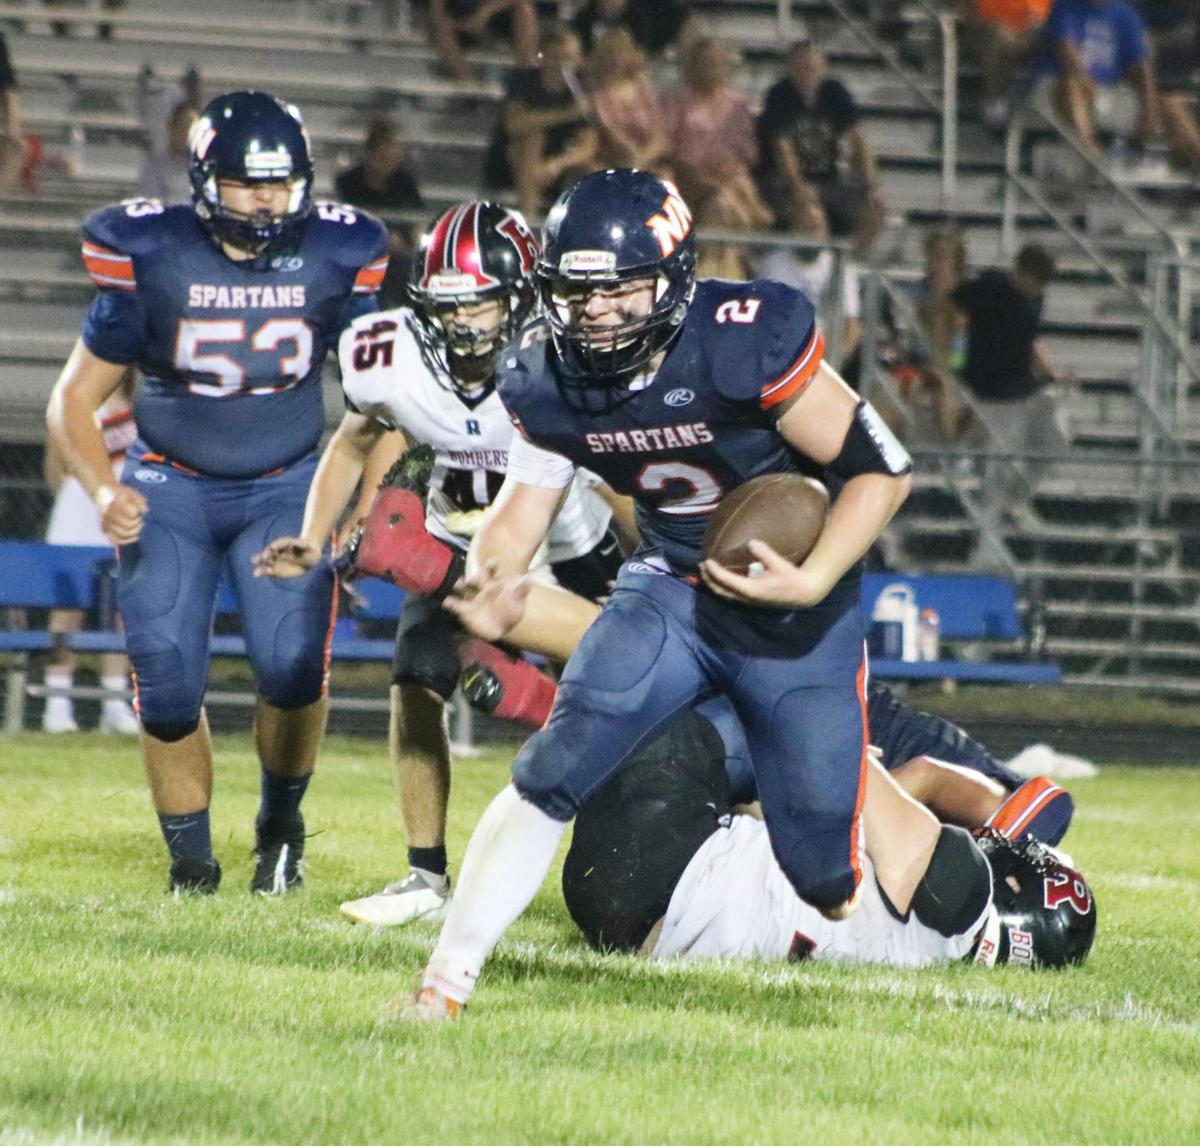 Rowland leads Spartans' running game